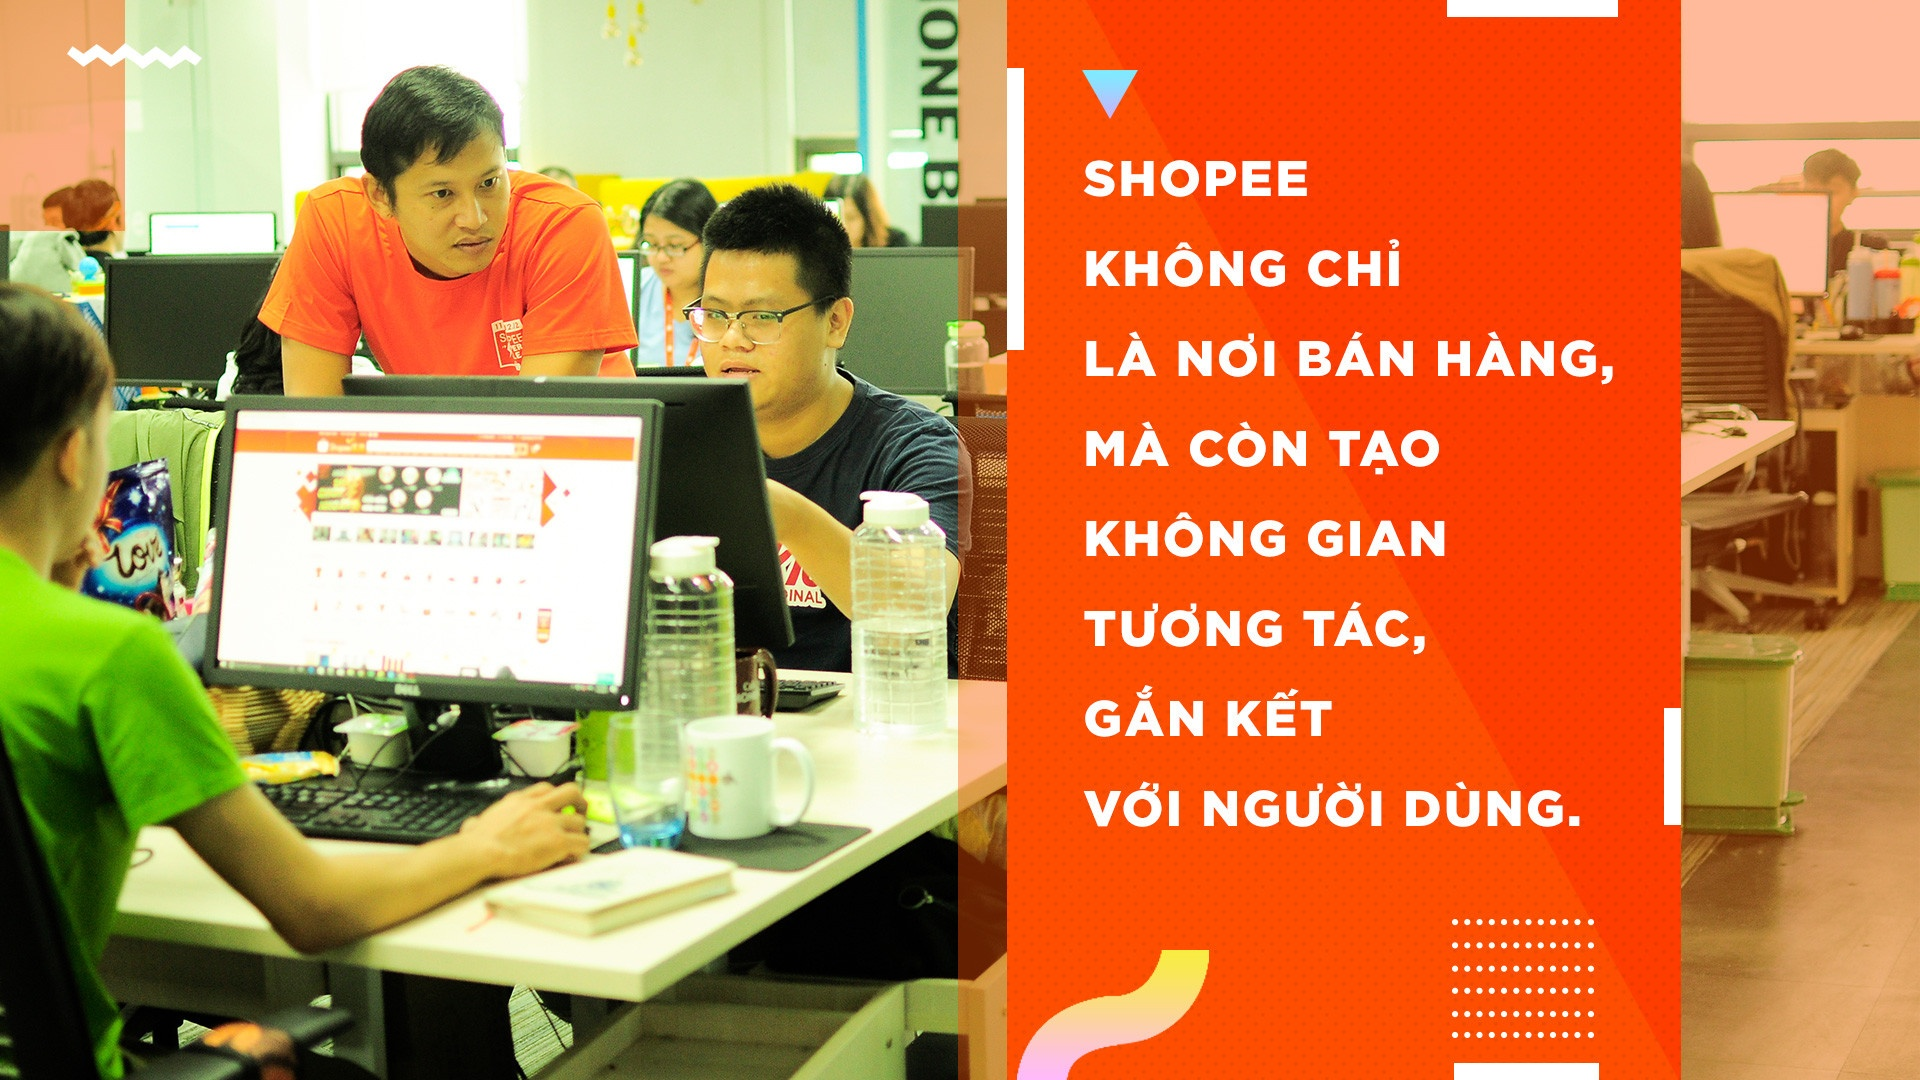 Shopee anh 6